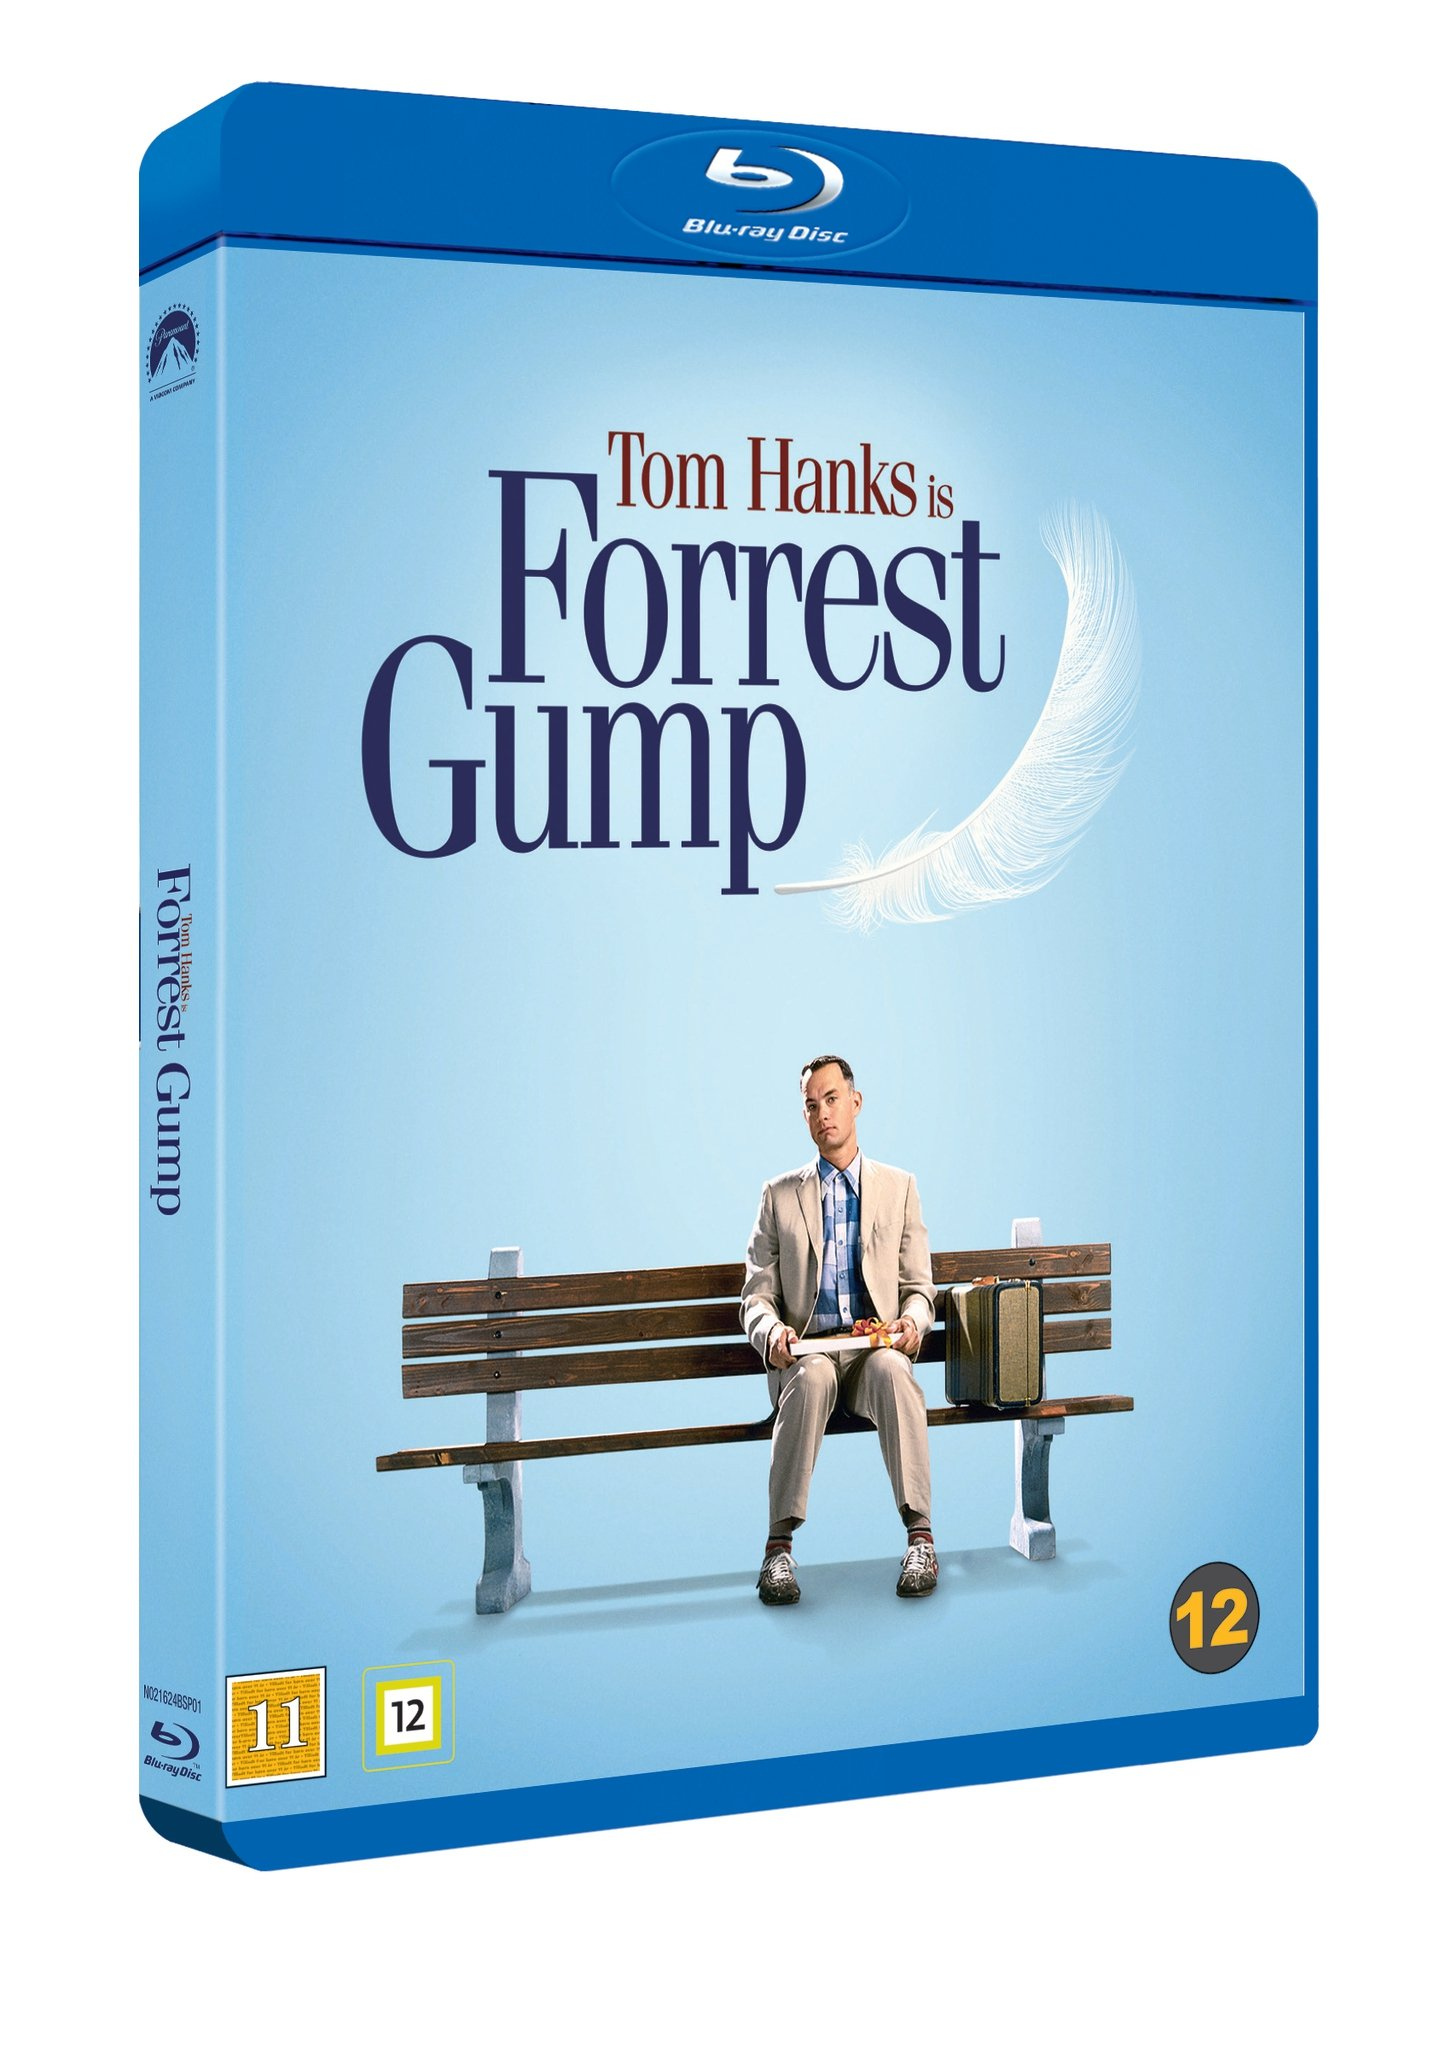 Forrest Gump (remastered 25th Anniversary edition) - Blu ray